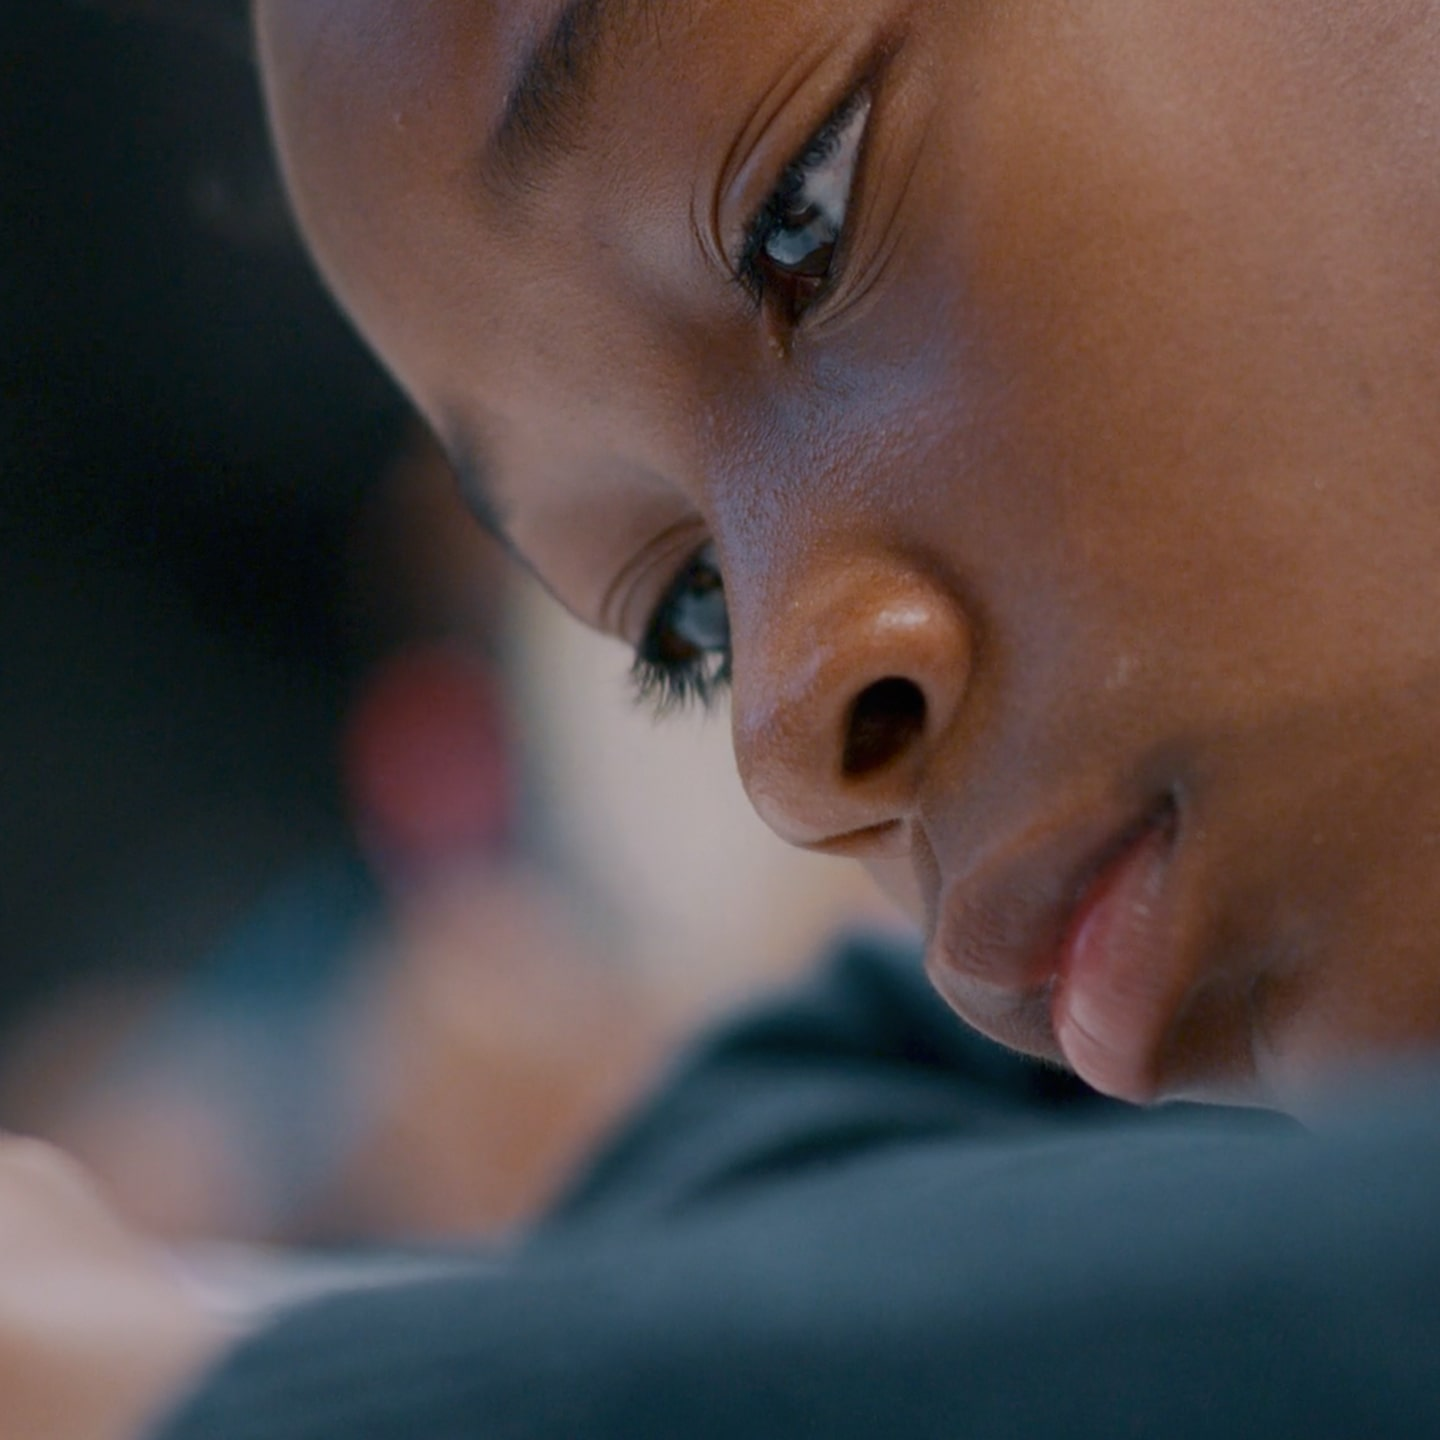 Example of nonprofit video work we did for Academy Prep, a local school